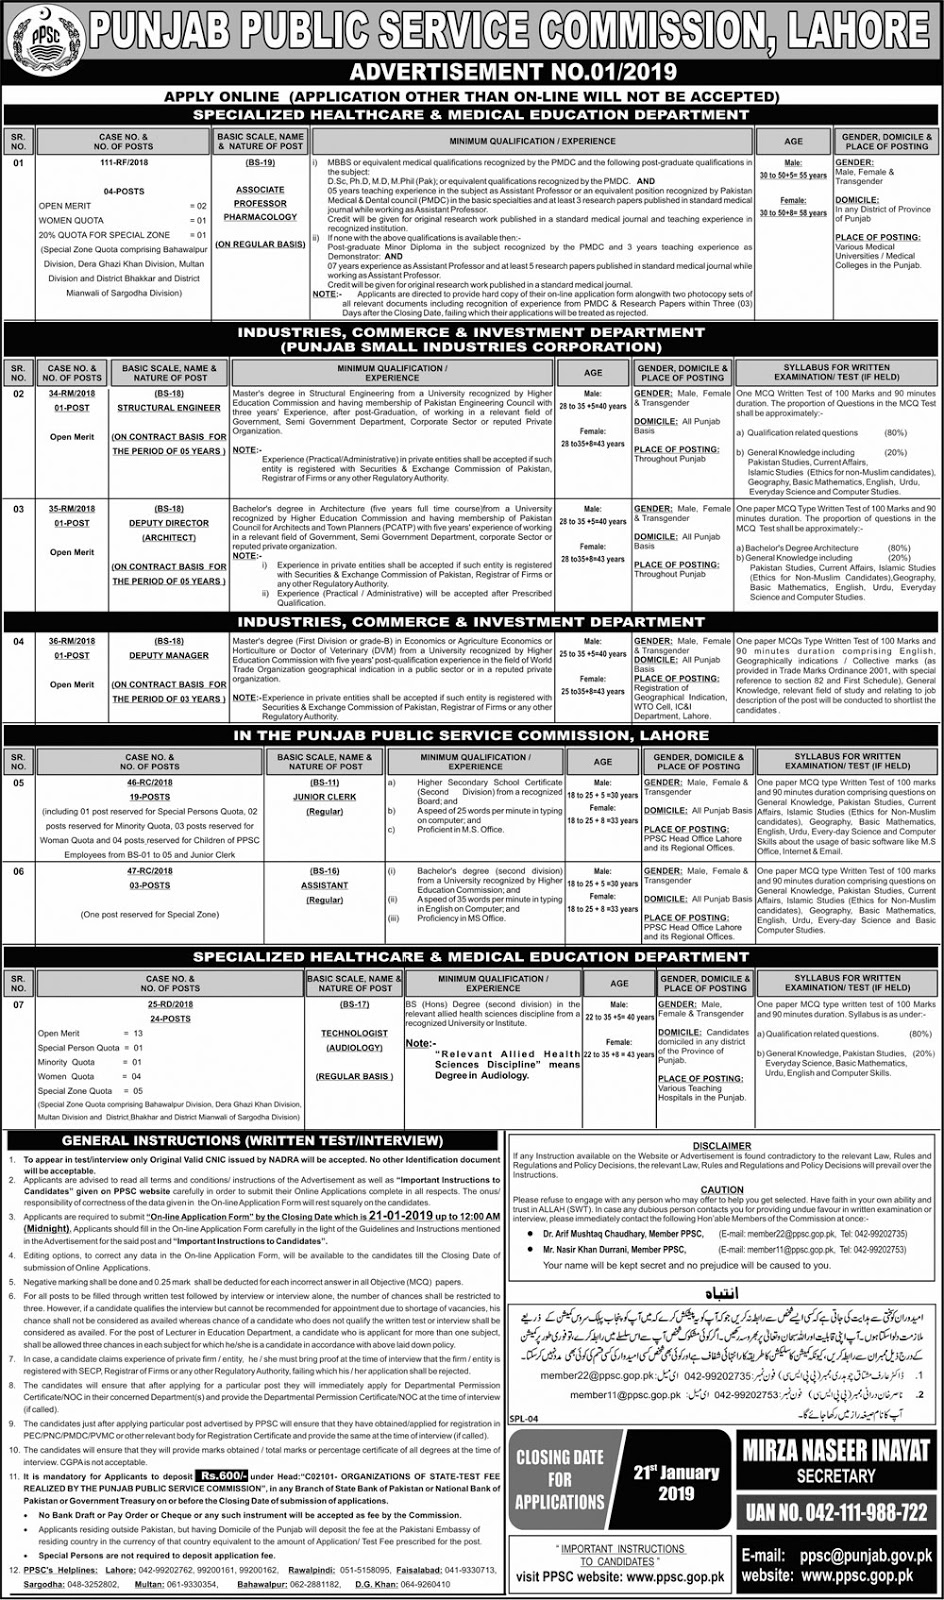 ppsc jobs today  ppsc upcoming jobs 2019  ppsc lecturer jobs 2019  fpsc jobs 2019  ppsc jobs 2019 advertisement  nts jobs 2019  ppsc results 2019  ppsc challan form